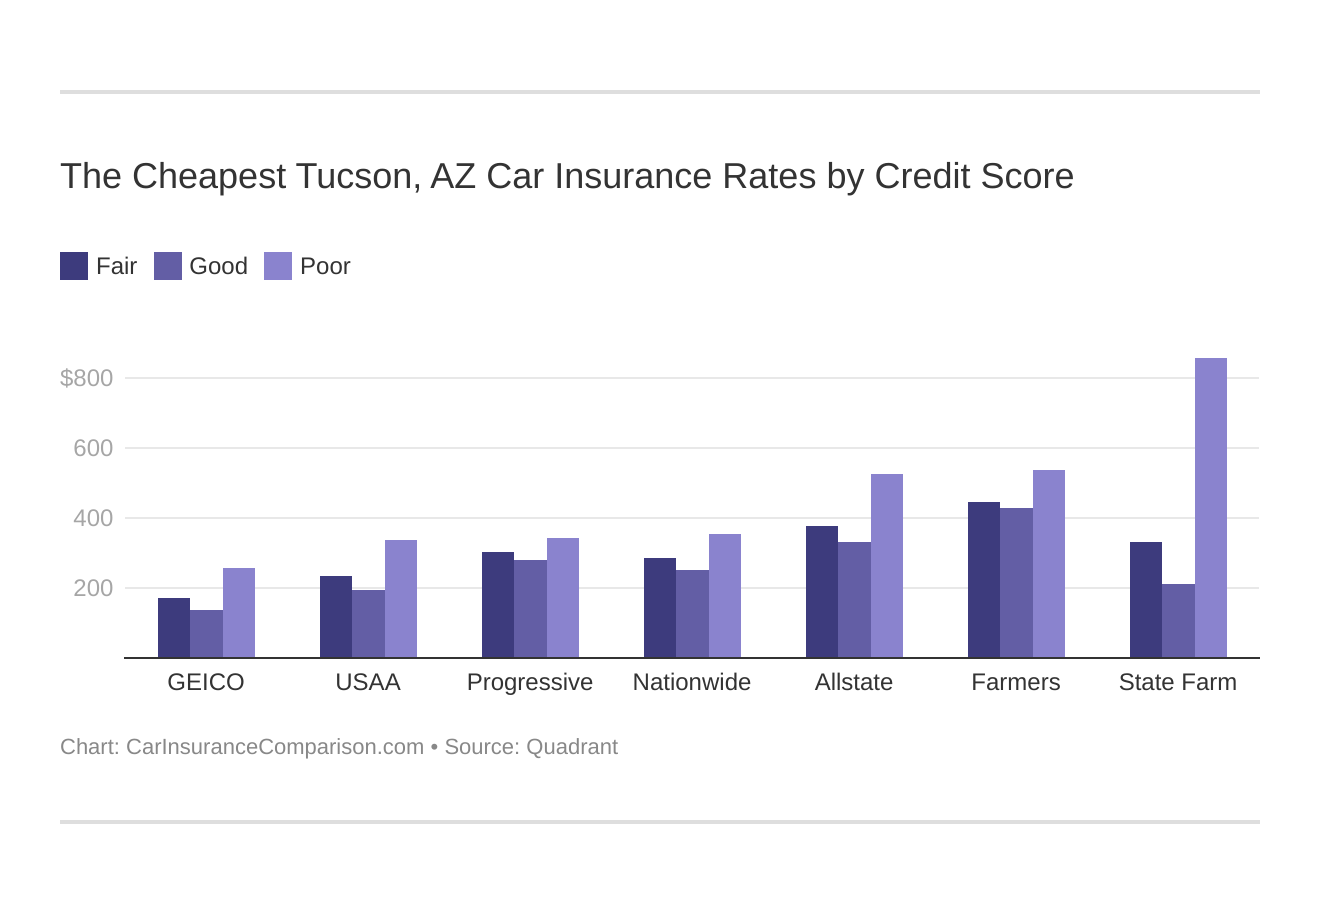 The Cheapest Tucson, AZ Car Insurance Rates by Credit Score